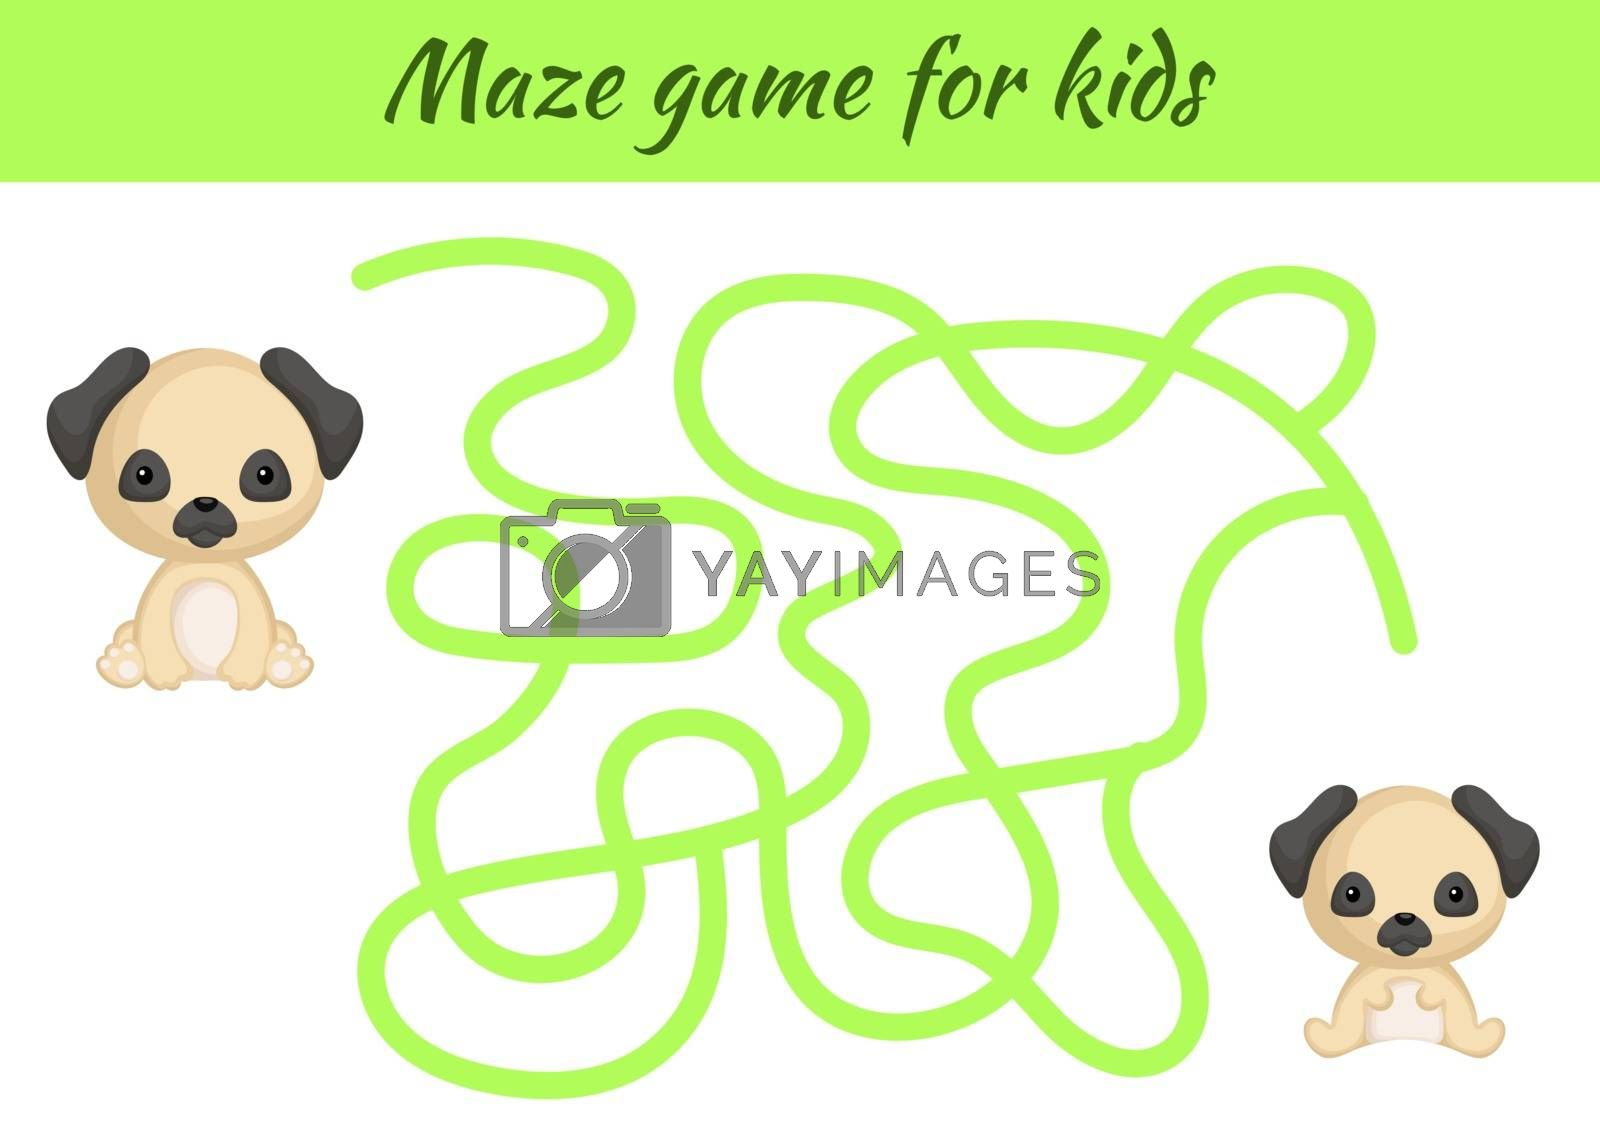 Funny maze or labyrinth game for kids. Help mother find path to baby. Education developing worksheet. Activity page. Cartoon pug dog characters. Riddle for preschool. Color vector stock illustration.